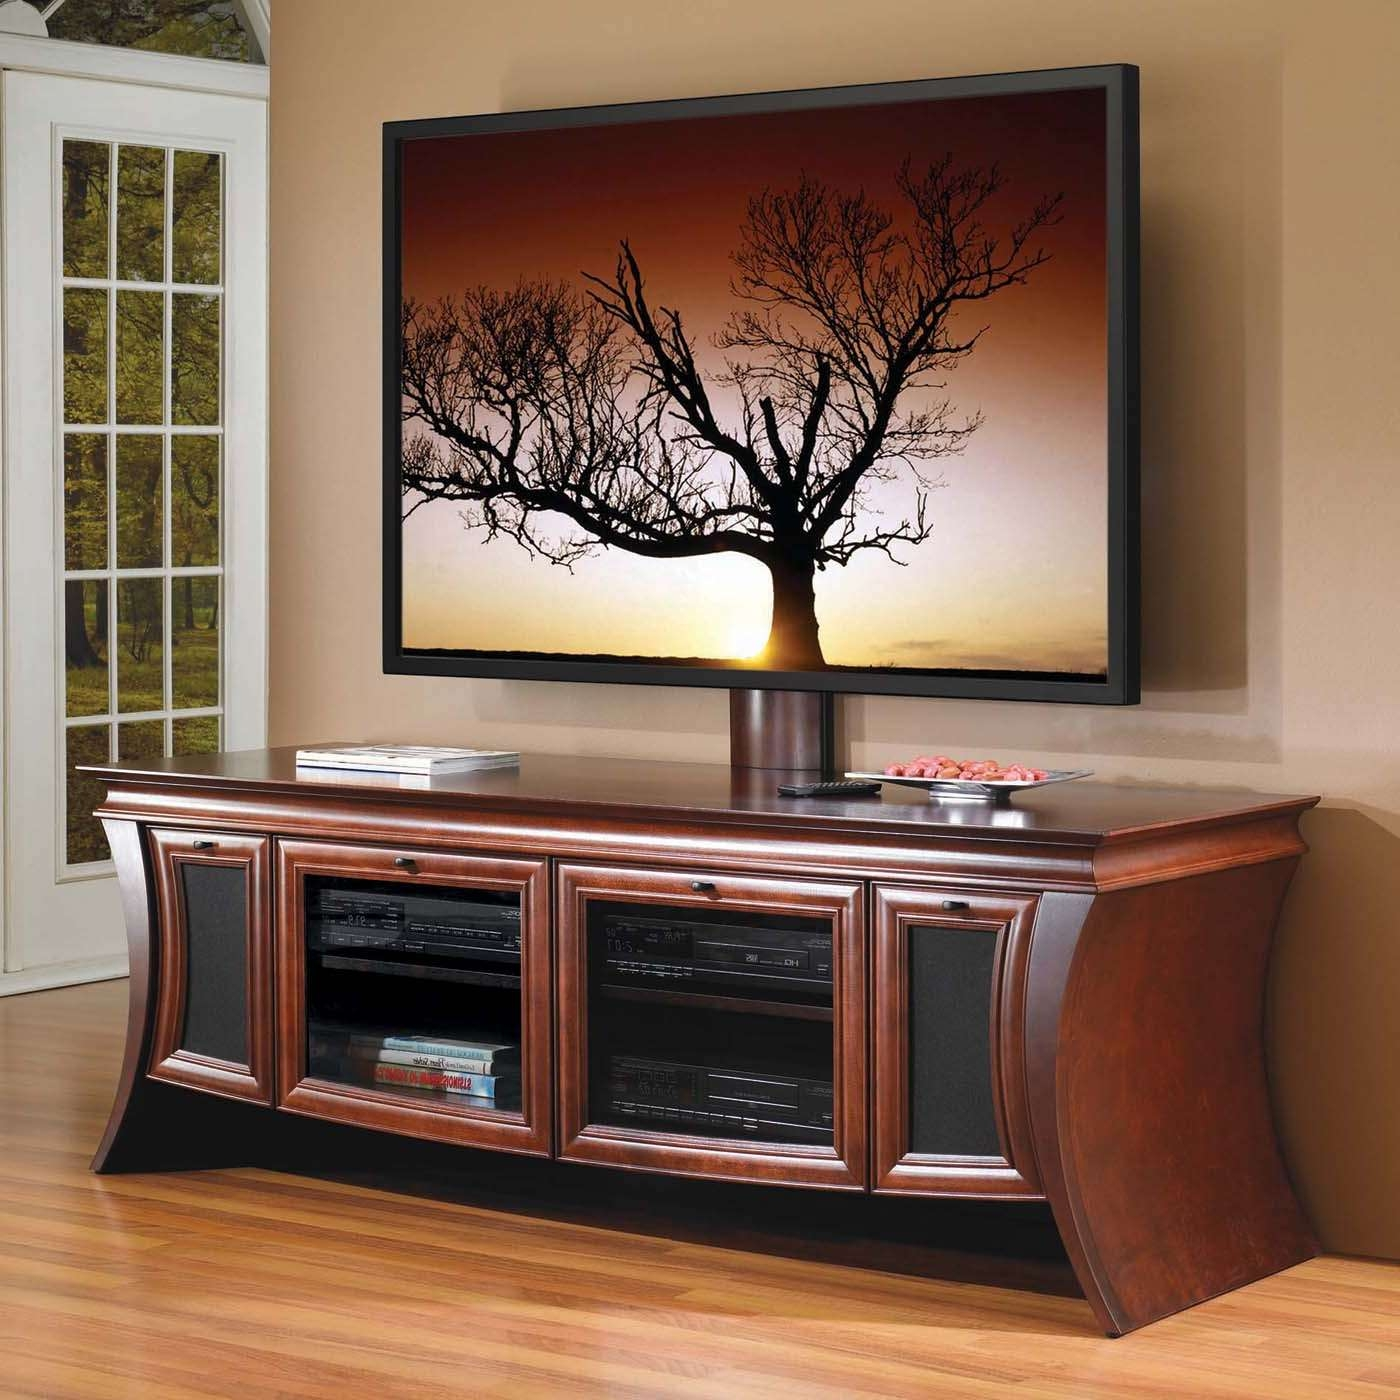 Furnitures Media Stands For Flat Screen Tvs Furniture The Best Throughout Wood And Glass Tv Stands For Flat Screens (View 5 of 20)